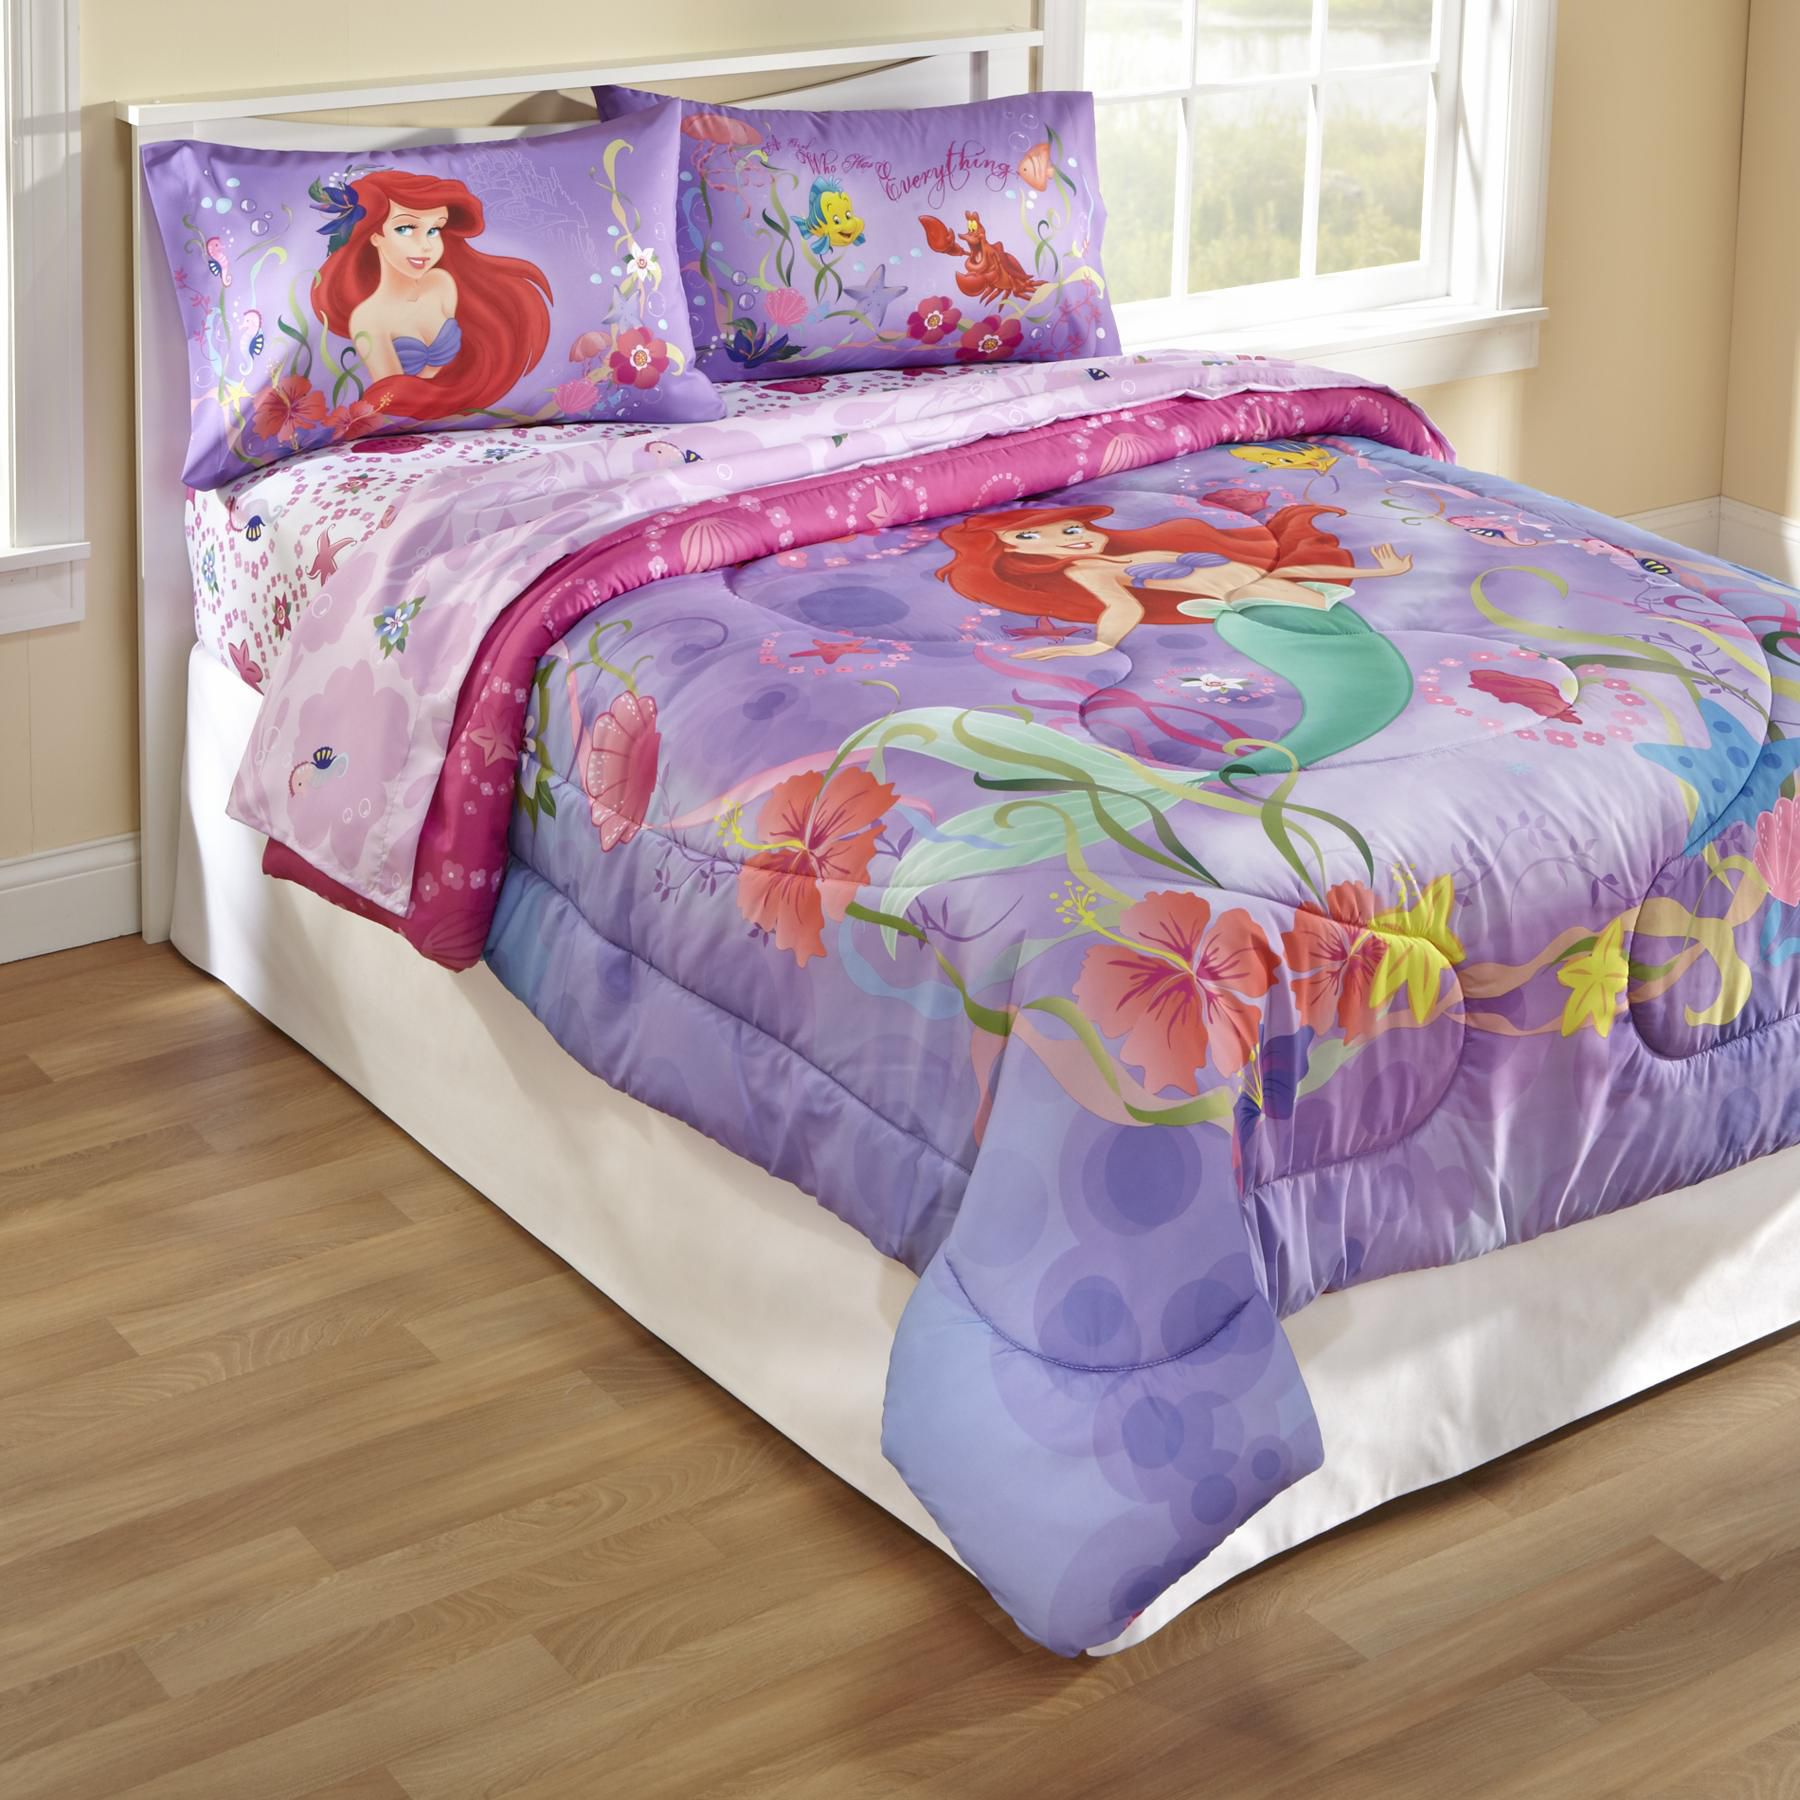 Disney Mermaid Twin Full Comforter - Home Bed & Bath Bedding Collections